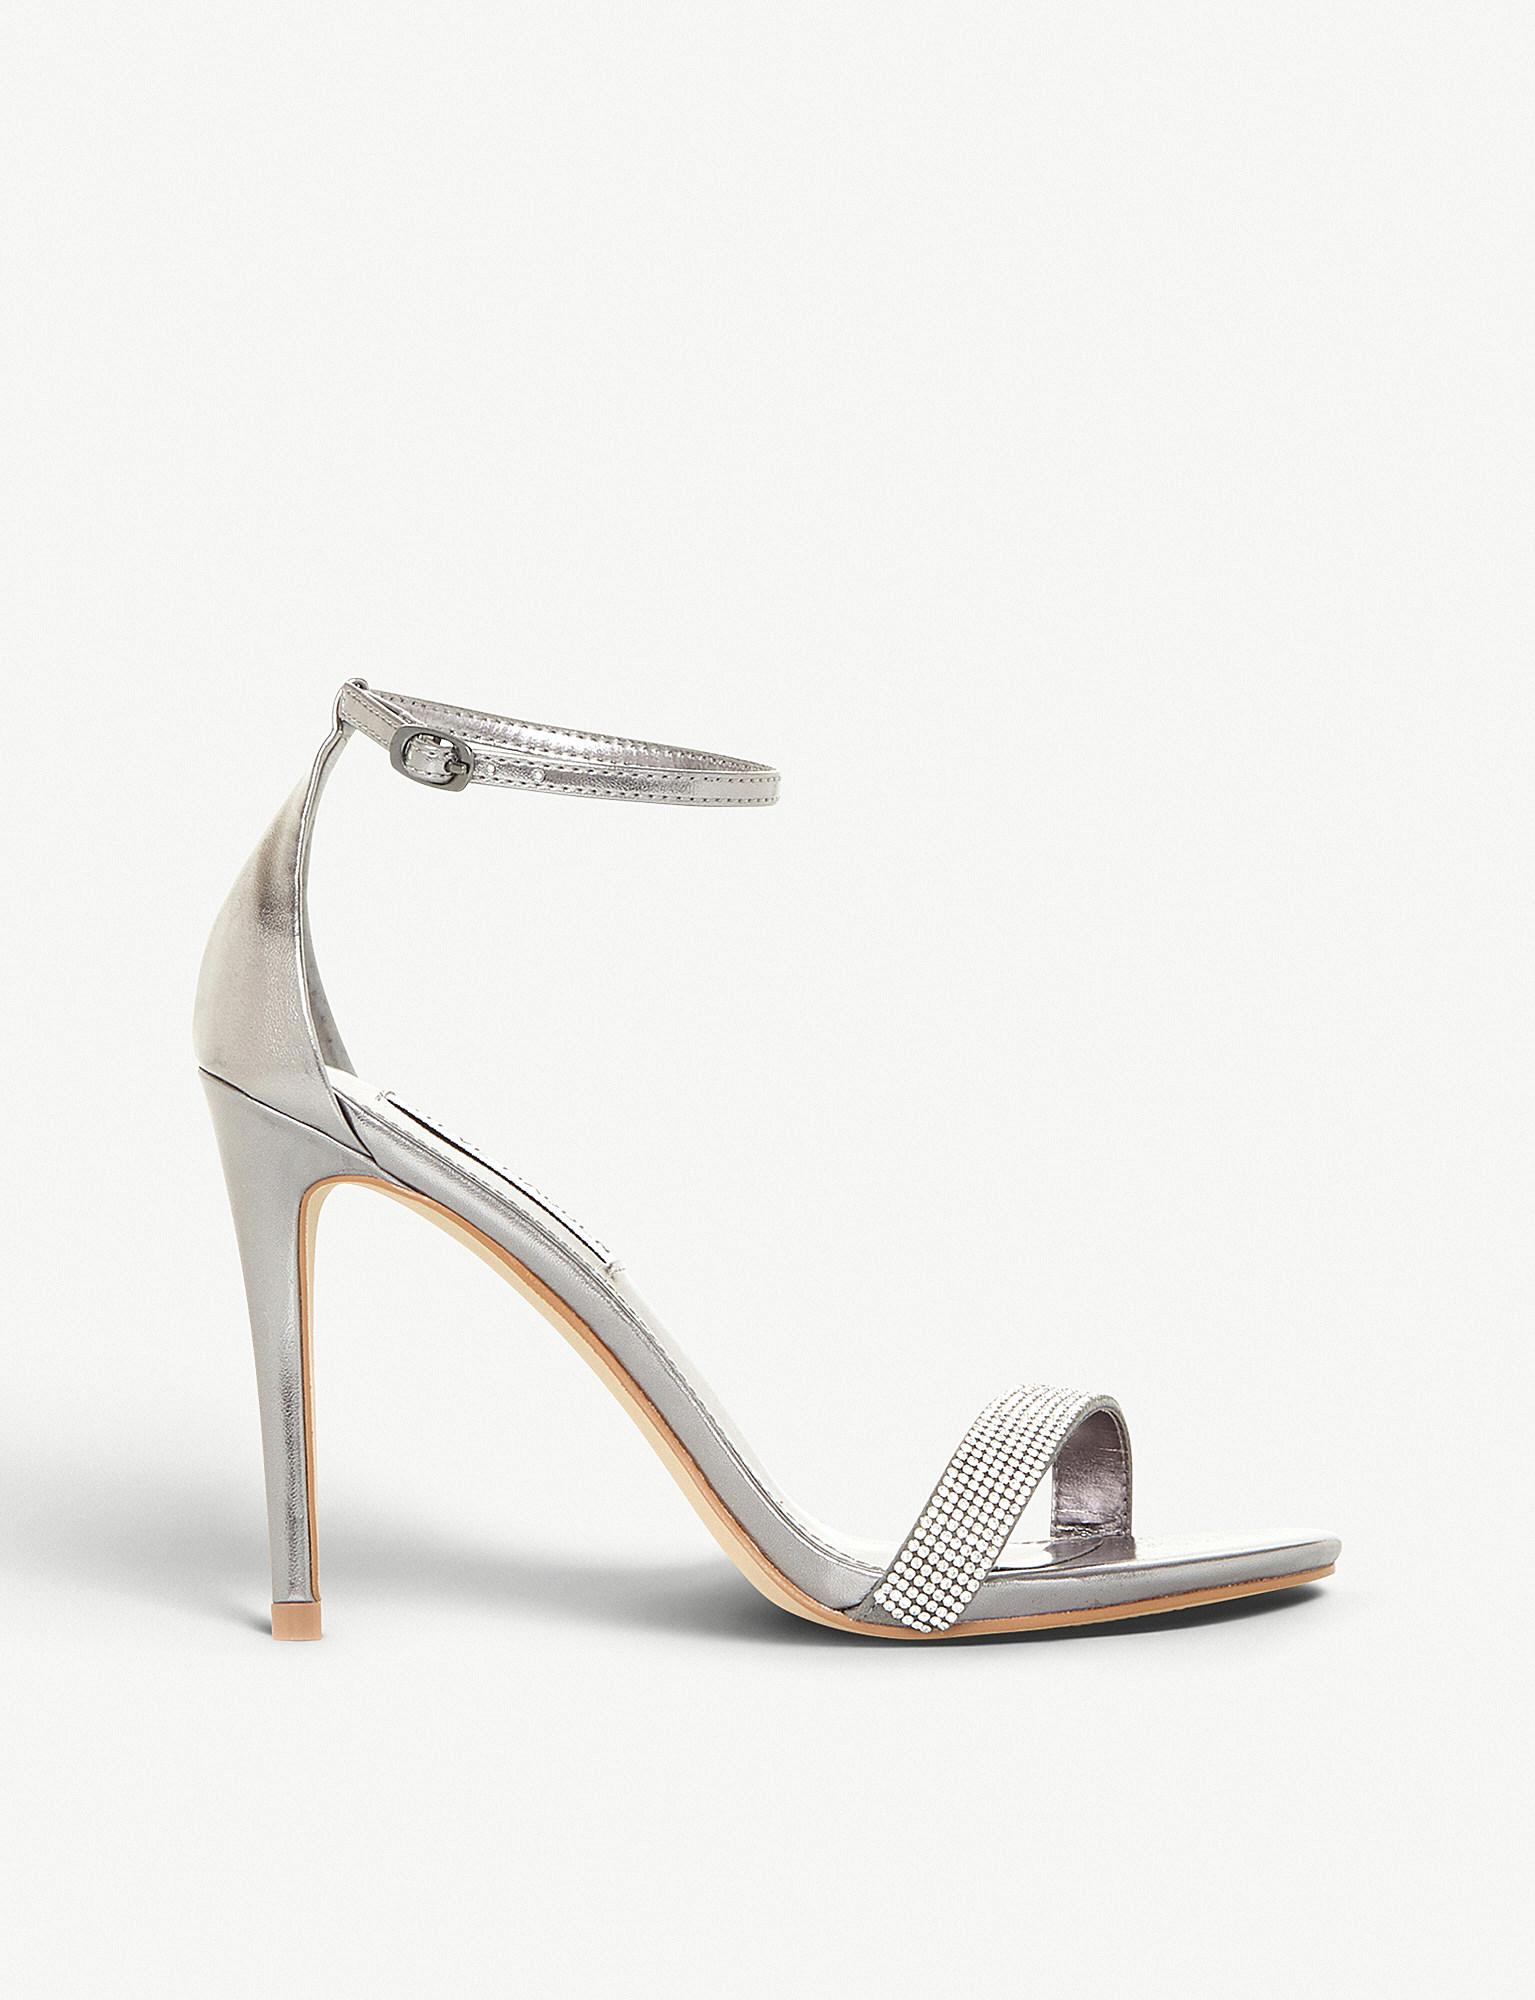 81b7052b840 Steve Madden Stecy Metallic Faux-leather And Diamanté Sandals in ...